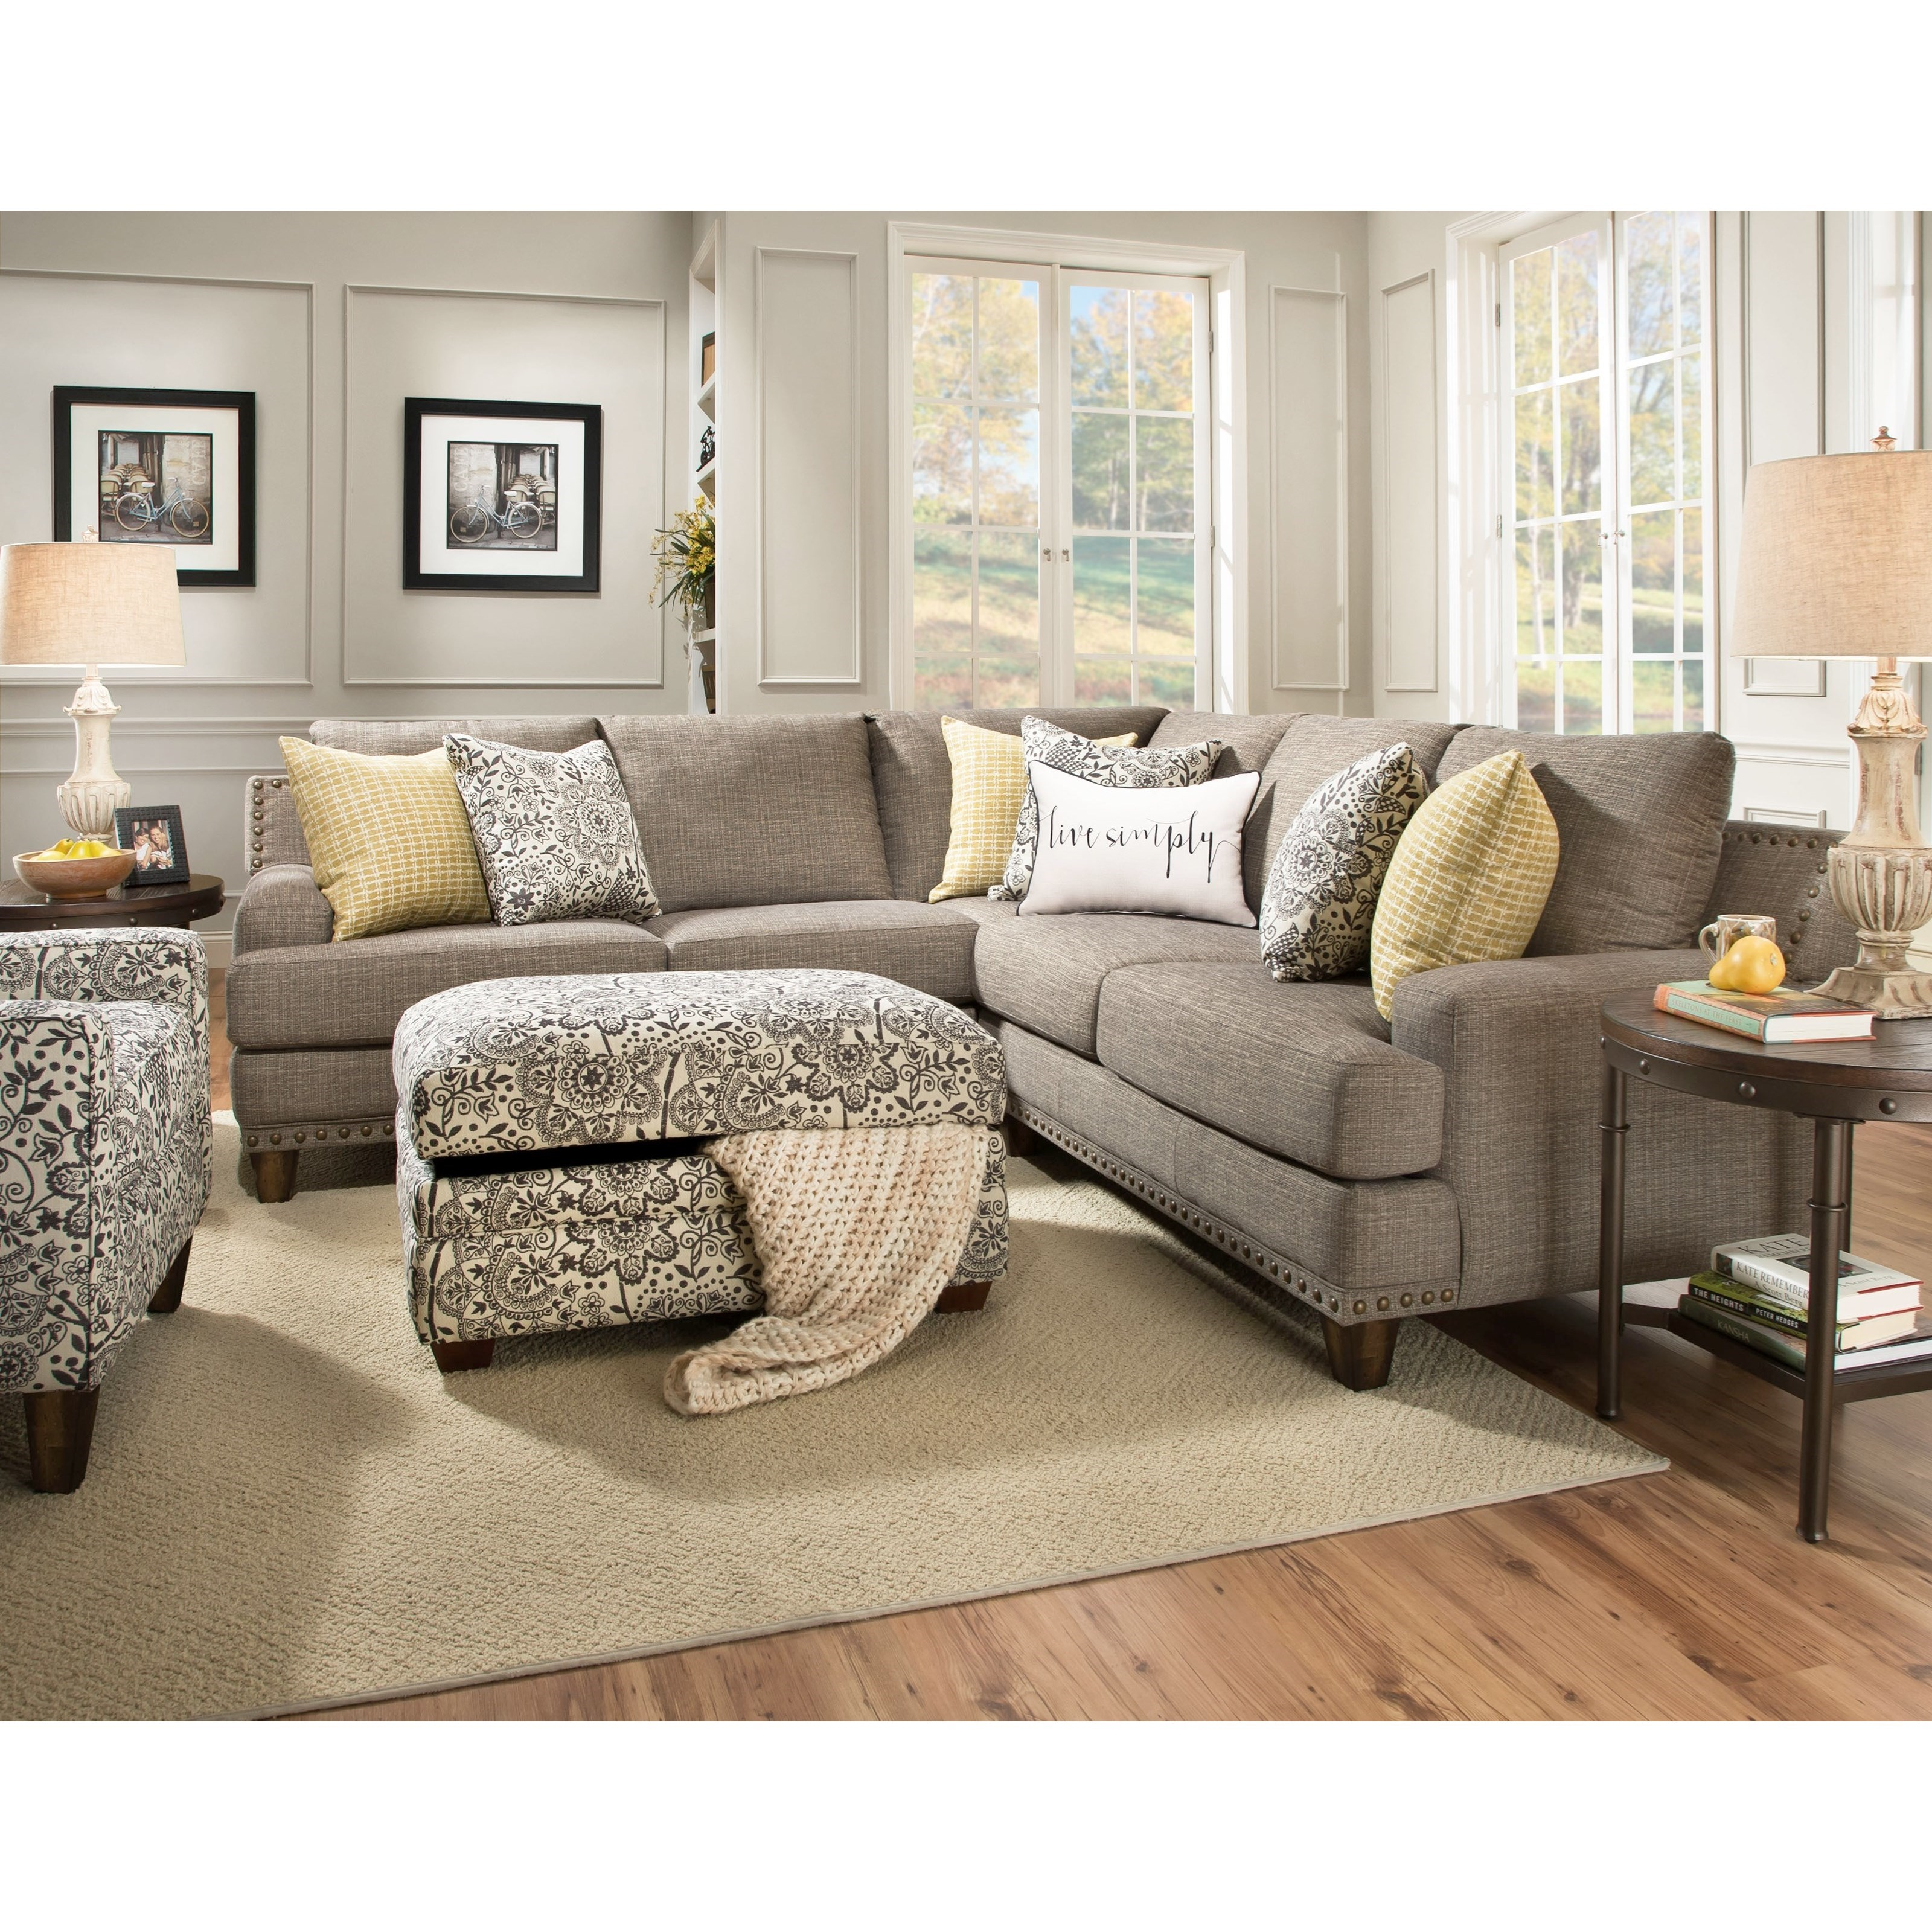 Merveilleux Franklin Julienne Sectional Sofa With Four Seats   Item Number: 86459+04 PC